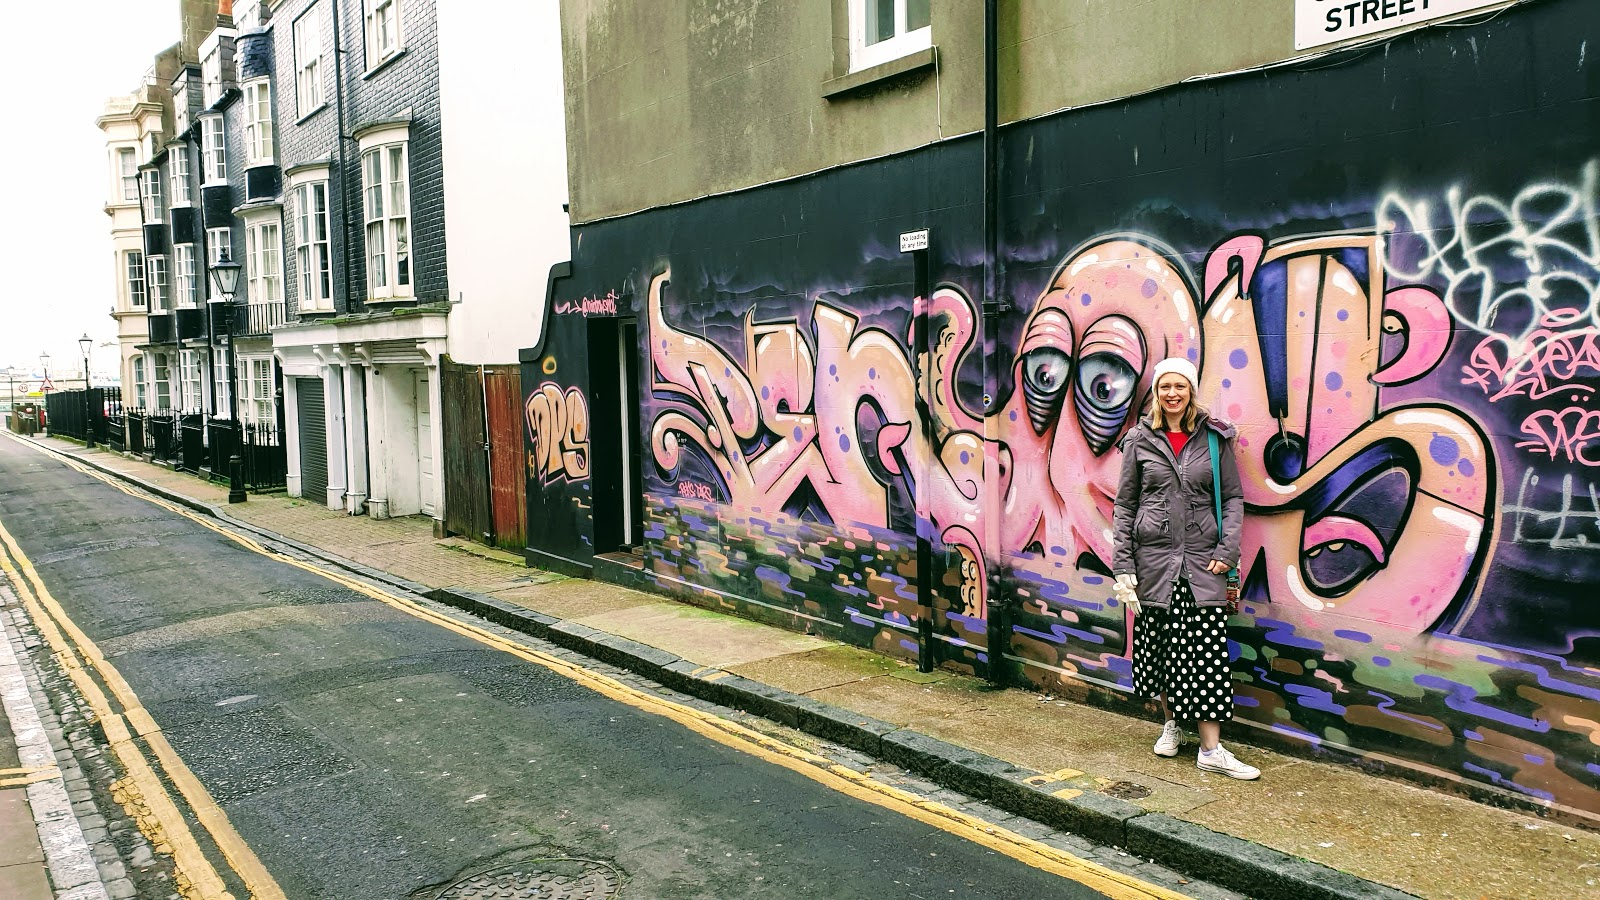 Pink Squid Street Art In Brighton: How Cool!?